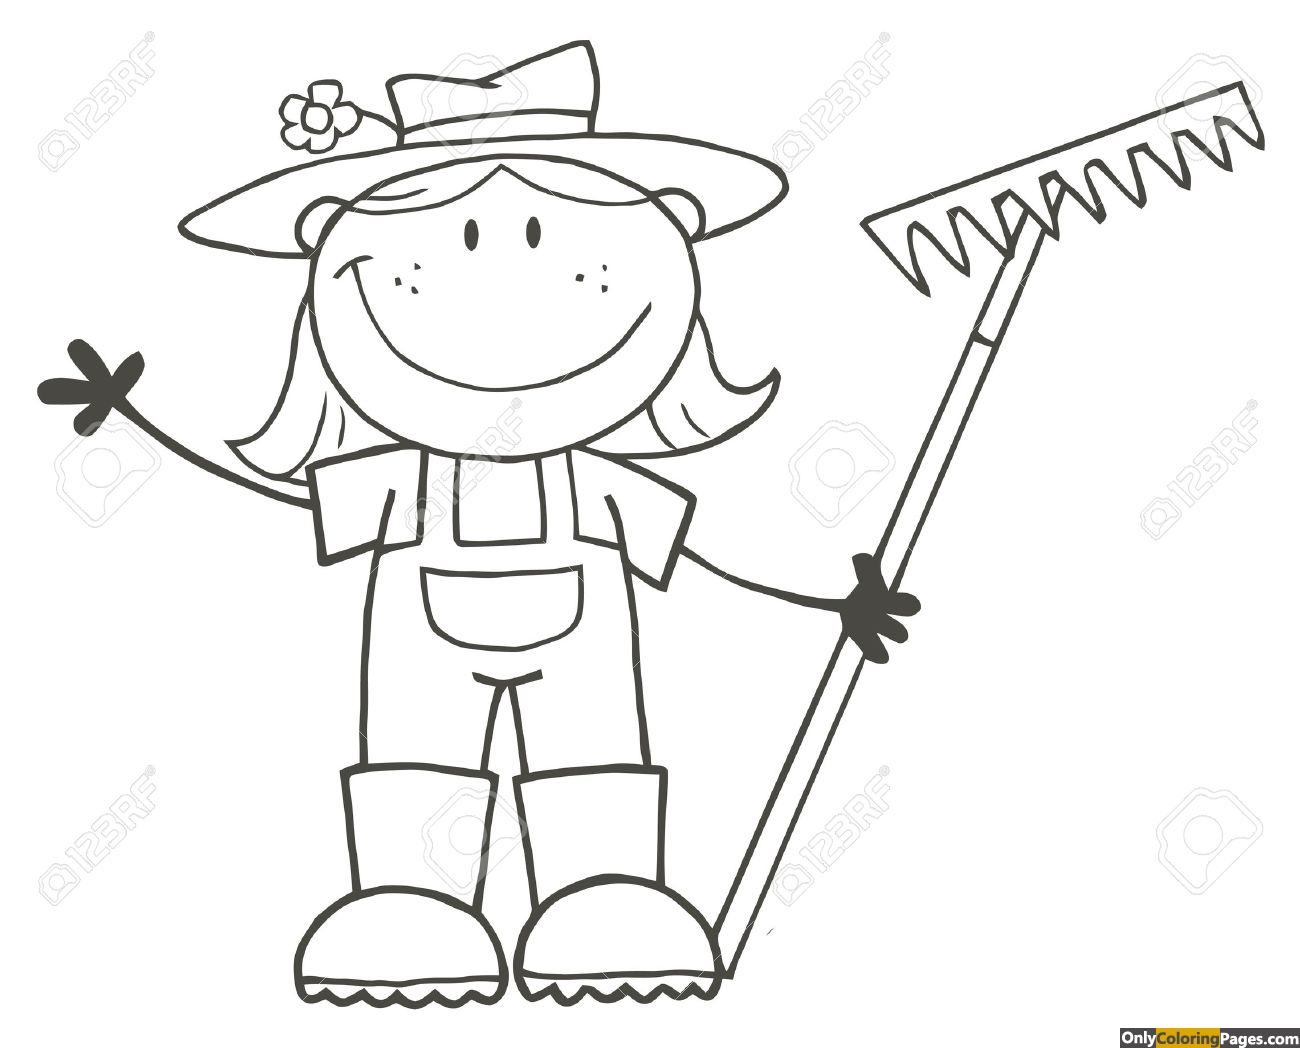 girl-farmer-coloring-pages